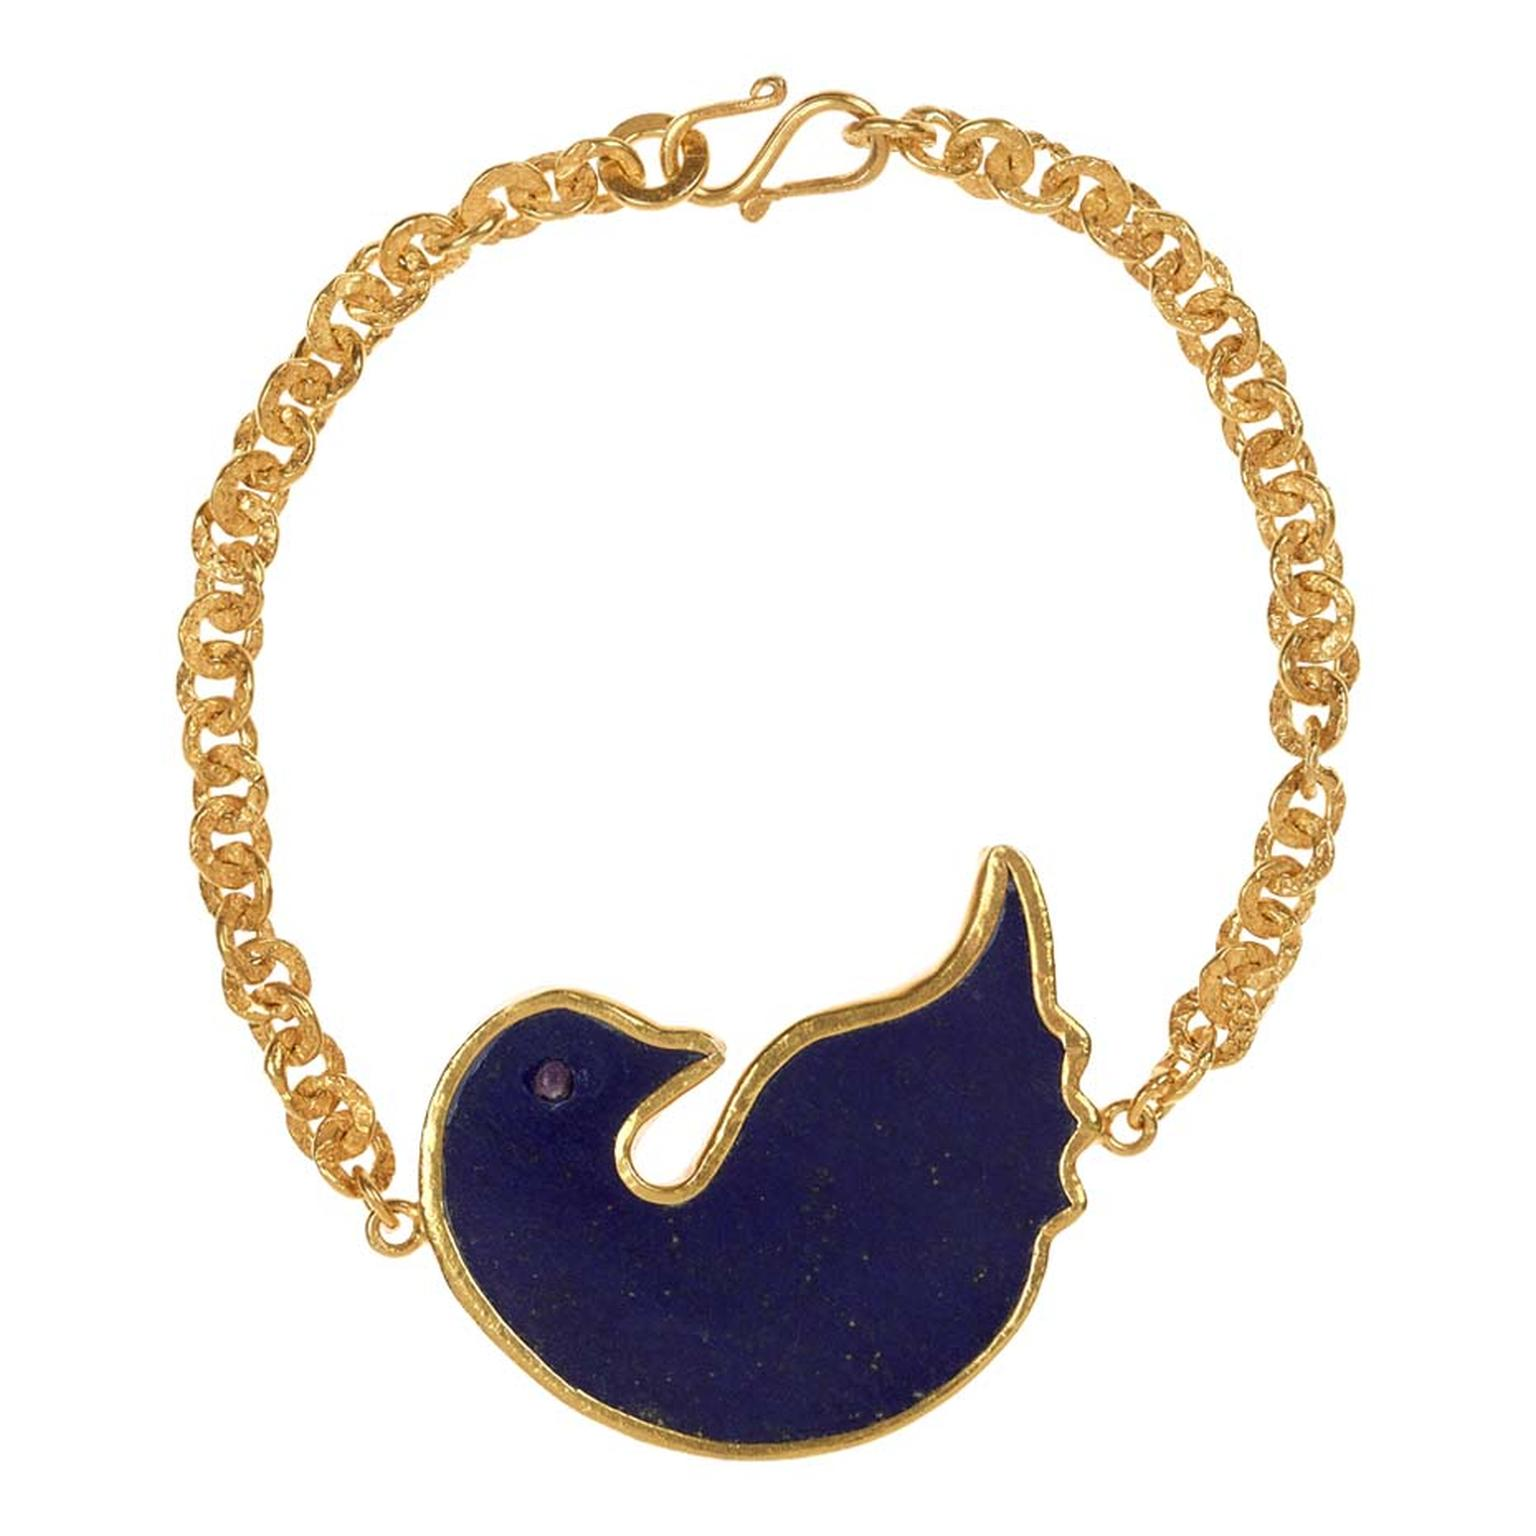 Pippa Small's gold Turquoise Mountain bracelet includes a dove of peace in lapis lazuli.